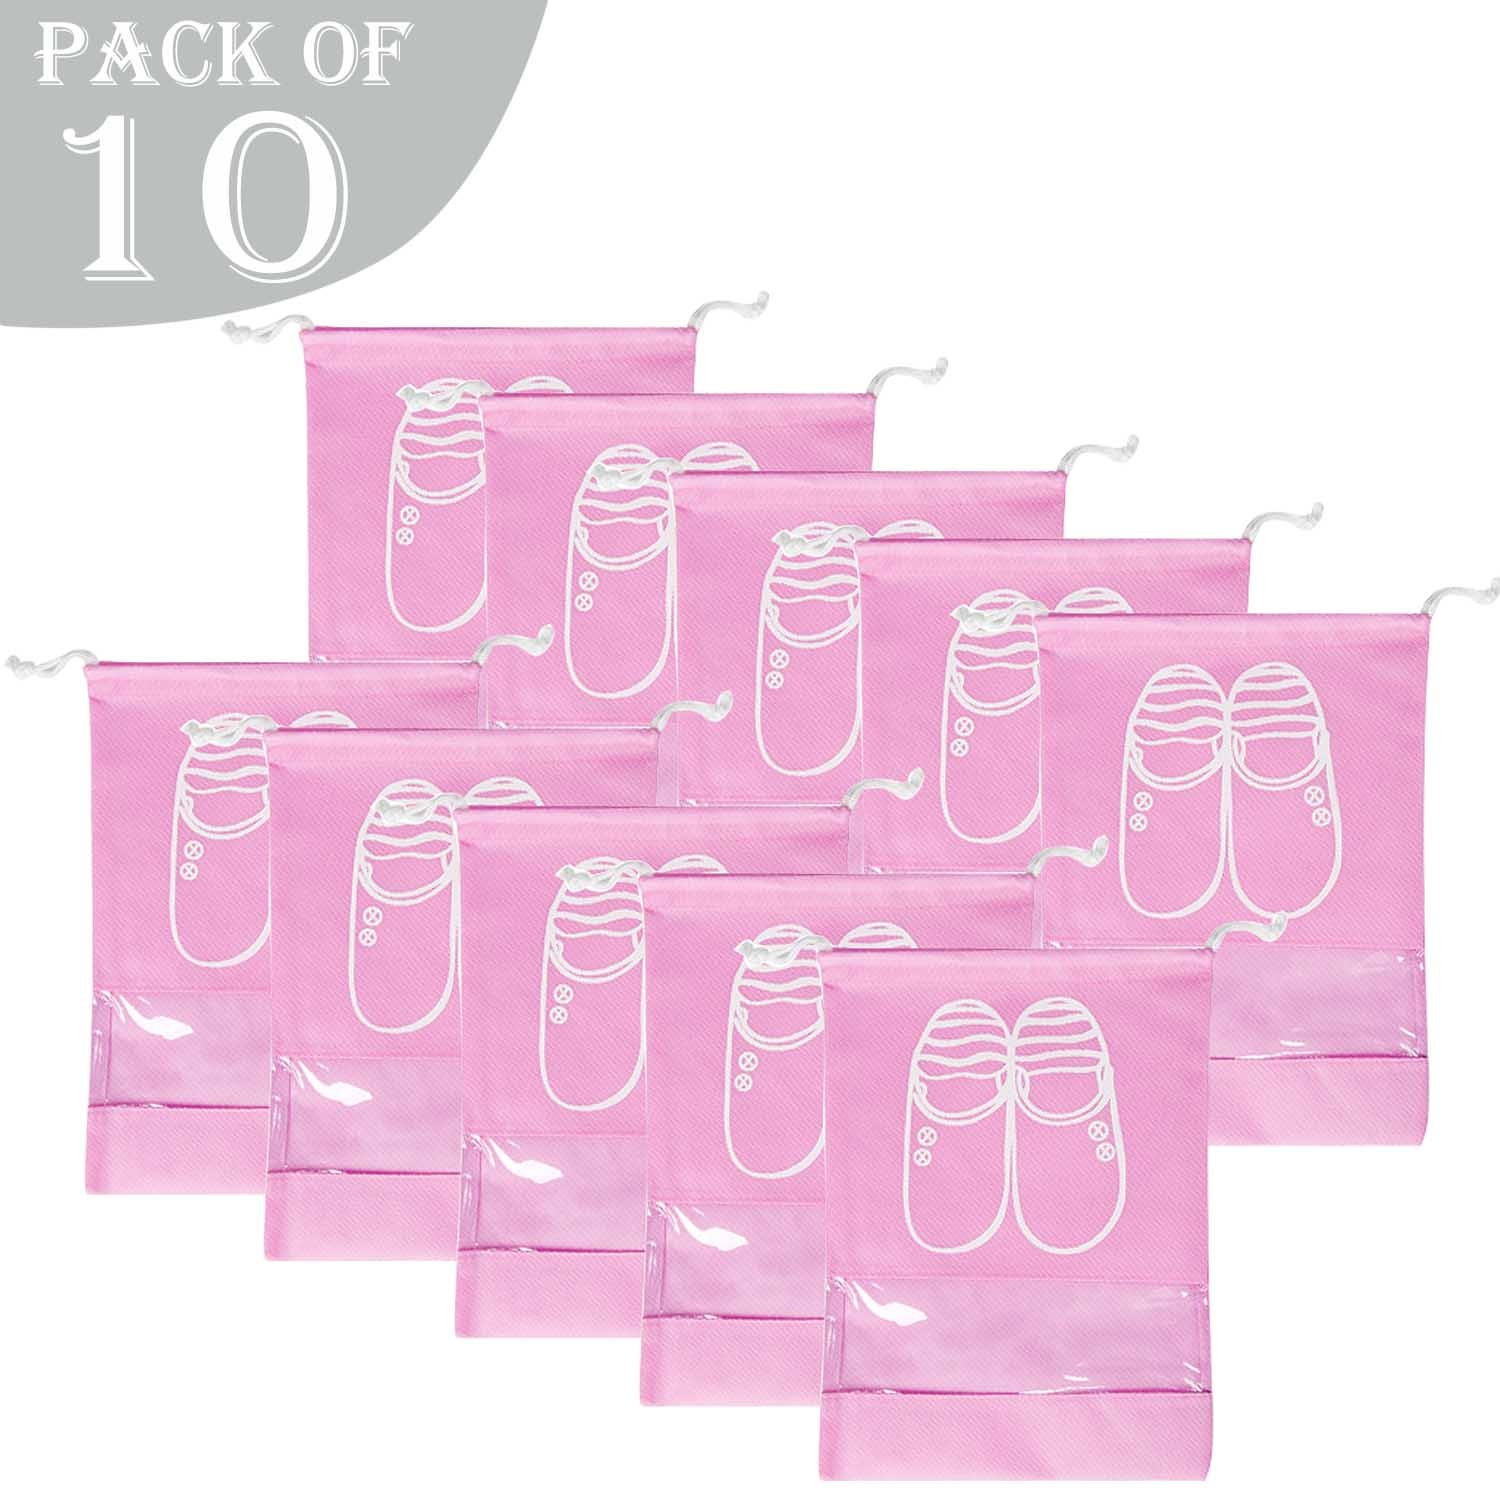 AVESON Pack of 10 Portable Travel Shoe Organiser Bag for Boots, High Heel - Drawstring, Transparent Window, Space Saving Storage Bags, Large Size, Pink